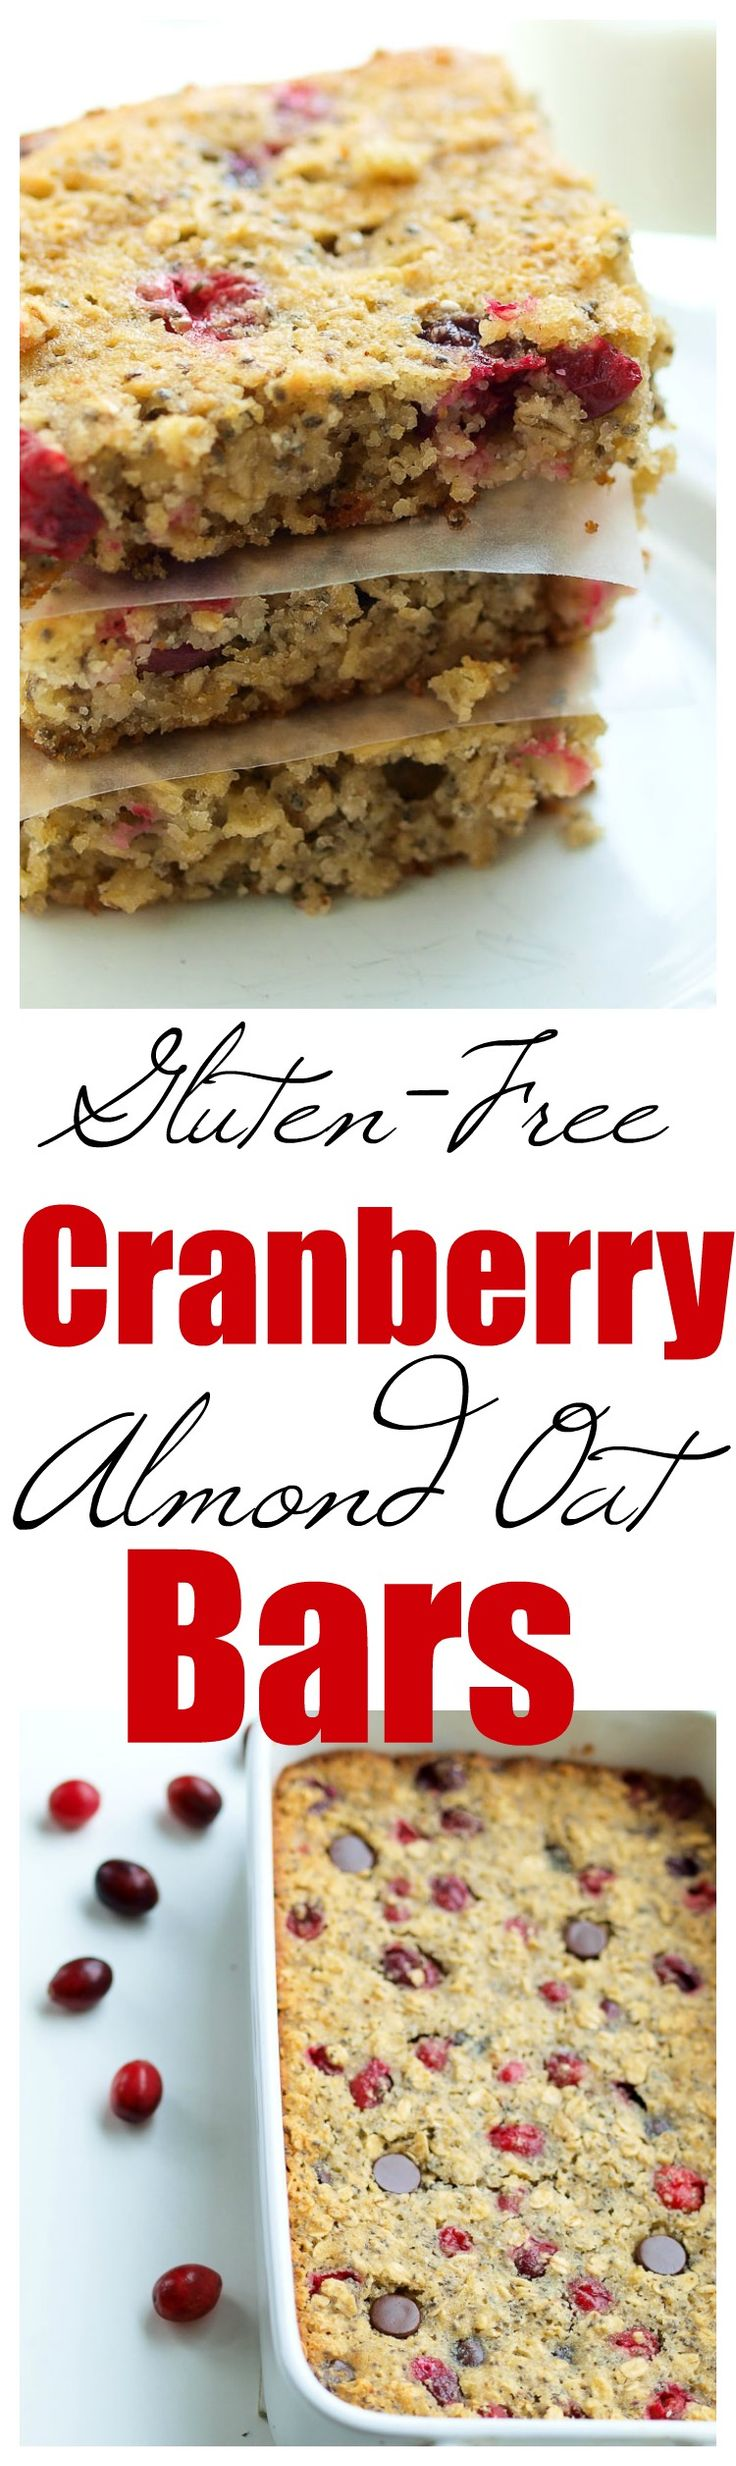 Cranberry Almond Oat Bars Recipe. These are healthy enough to eat for breakfast, but also make a great healthy dessert or snack. The whole family loves this gluten-free snack ideas #glutenfree #breakfast #snack #healthy #christmas